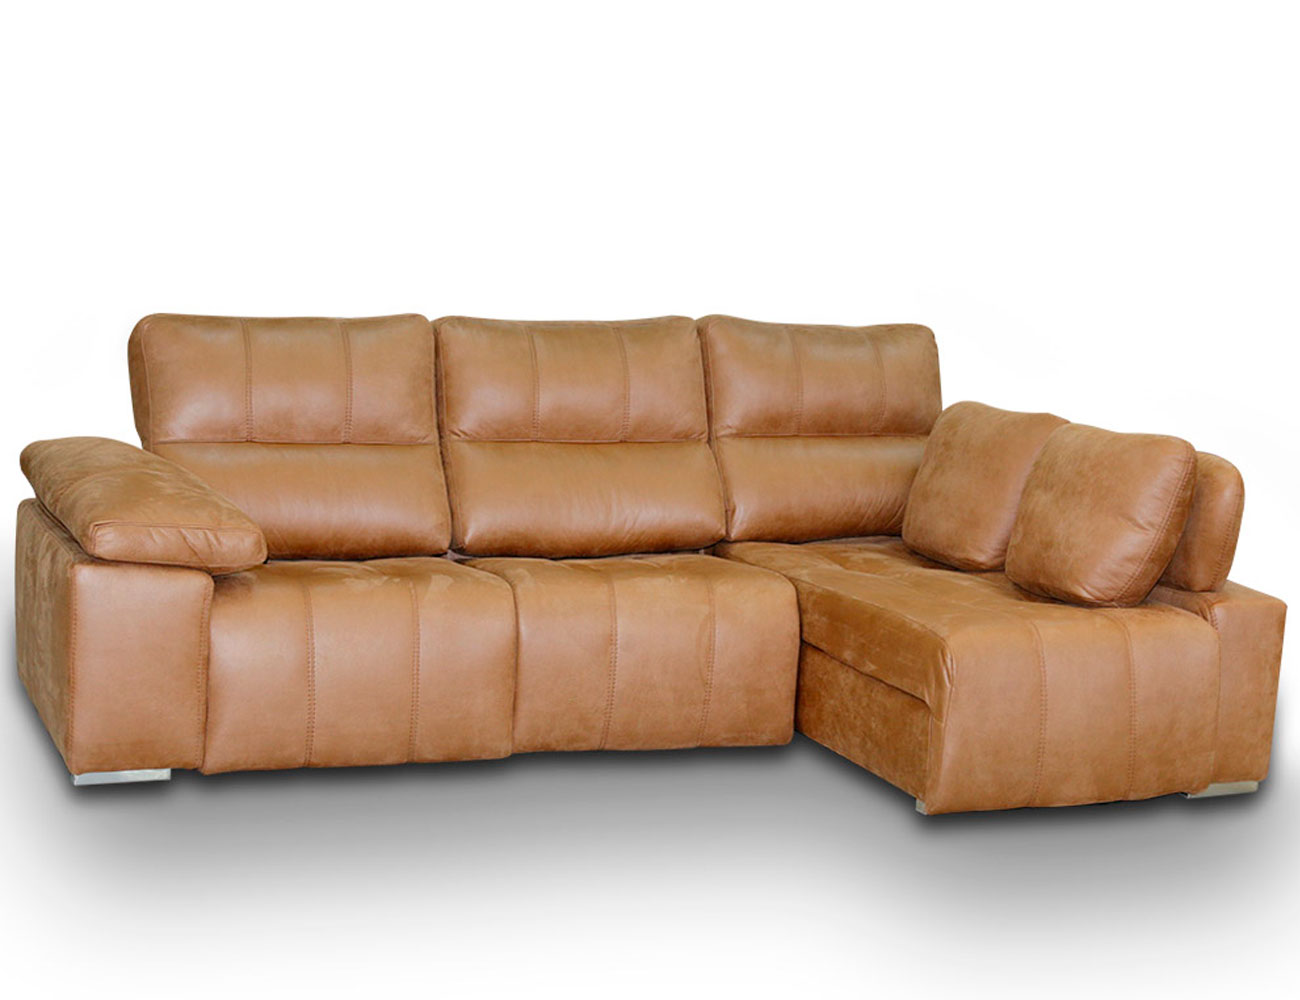 Sofa chaiselongue relax 2 motores anti manchas22